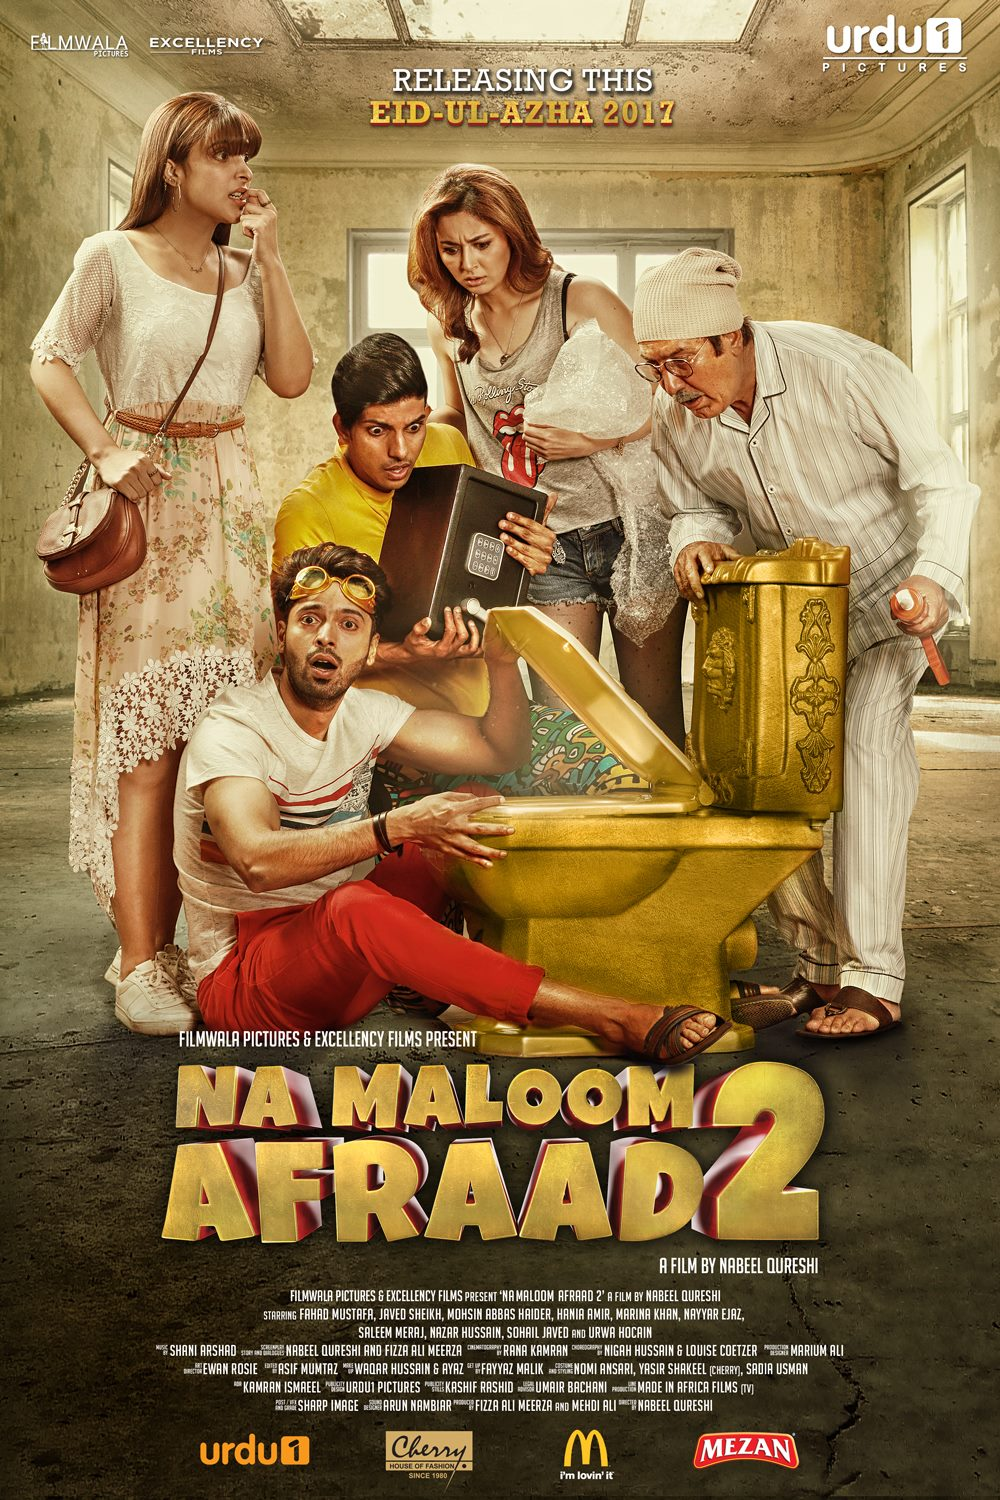 Na Maloom Afraad 2 (2017) - Photo Gallery - IMDb